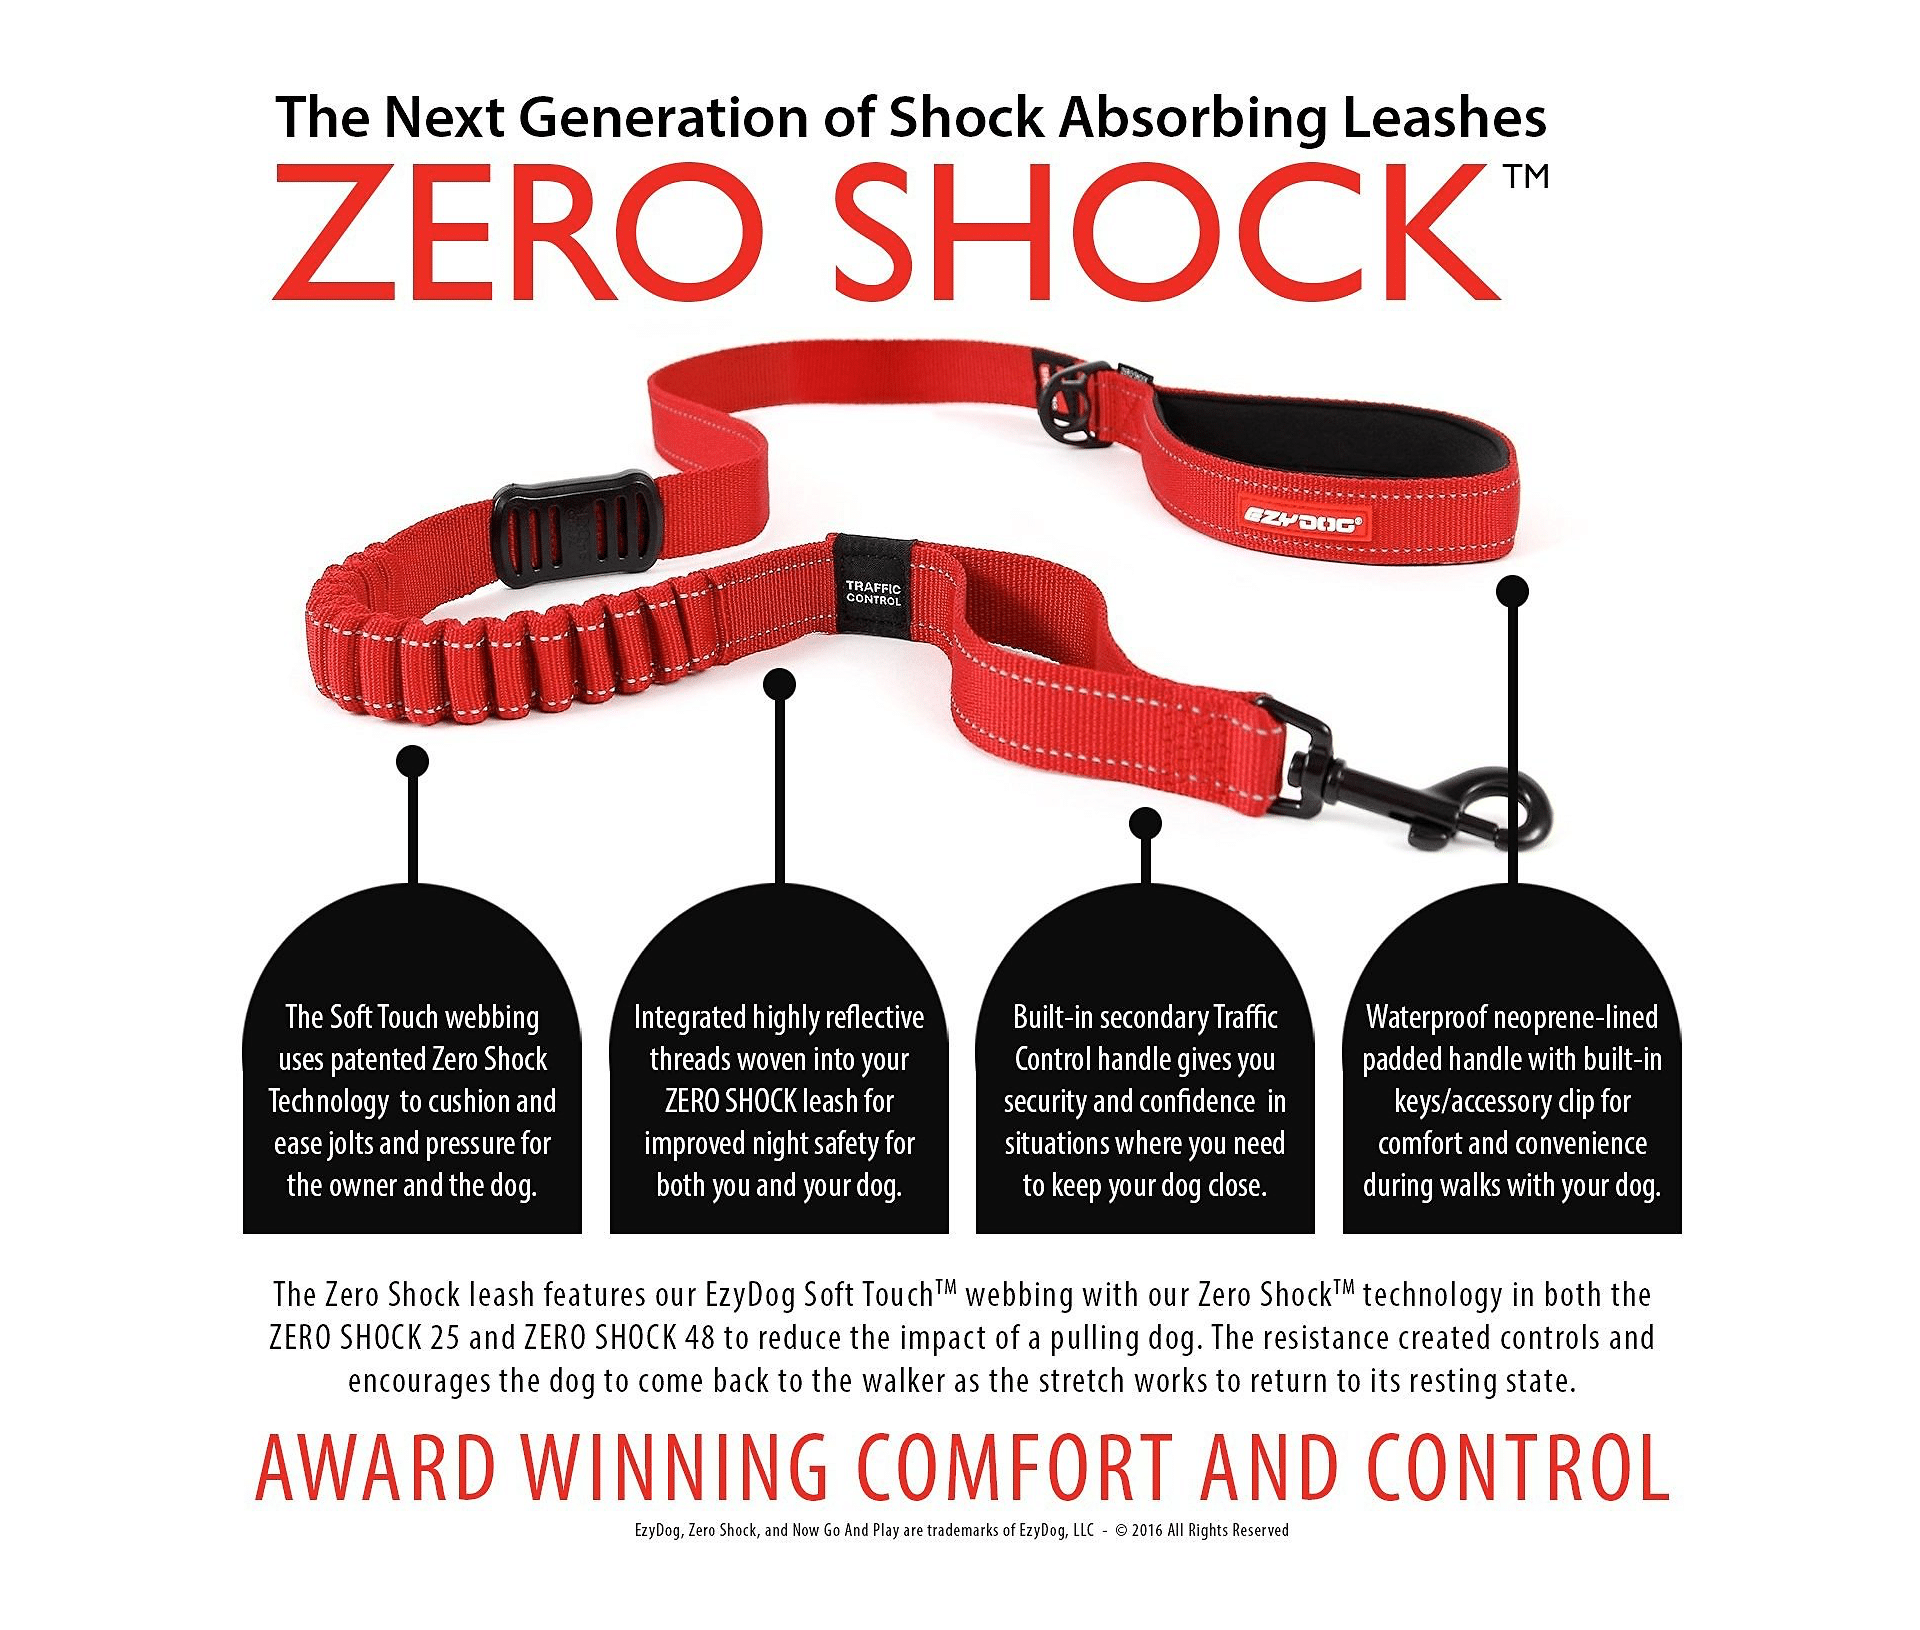 The EzyDog Zero Shock Absorbing Dog Leash